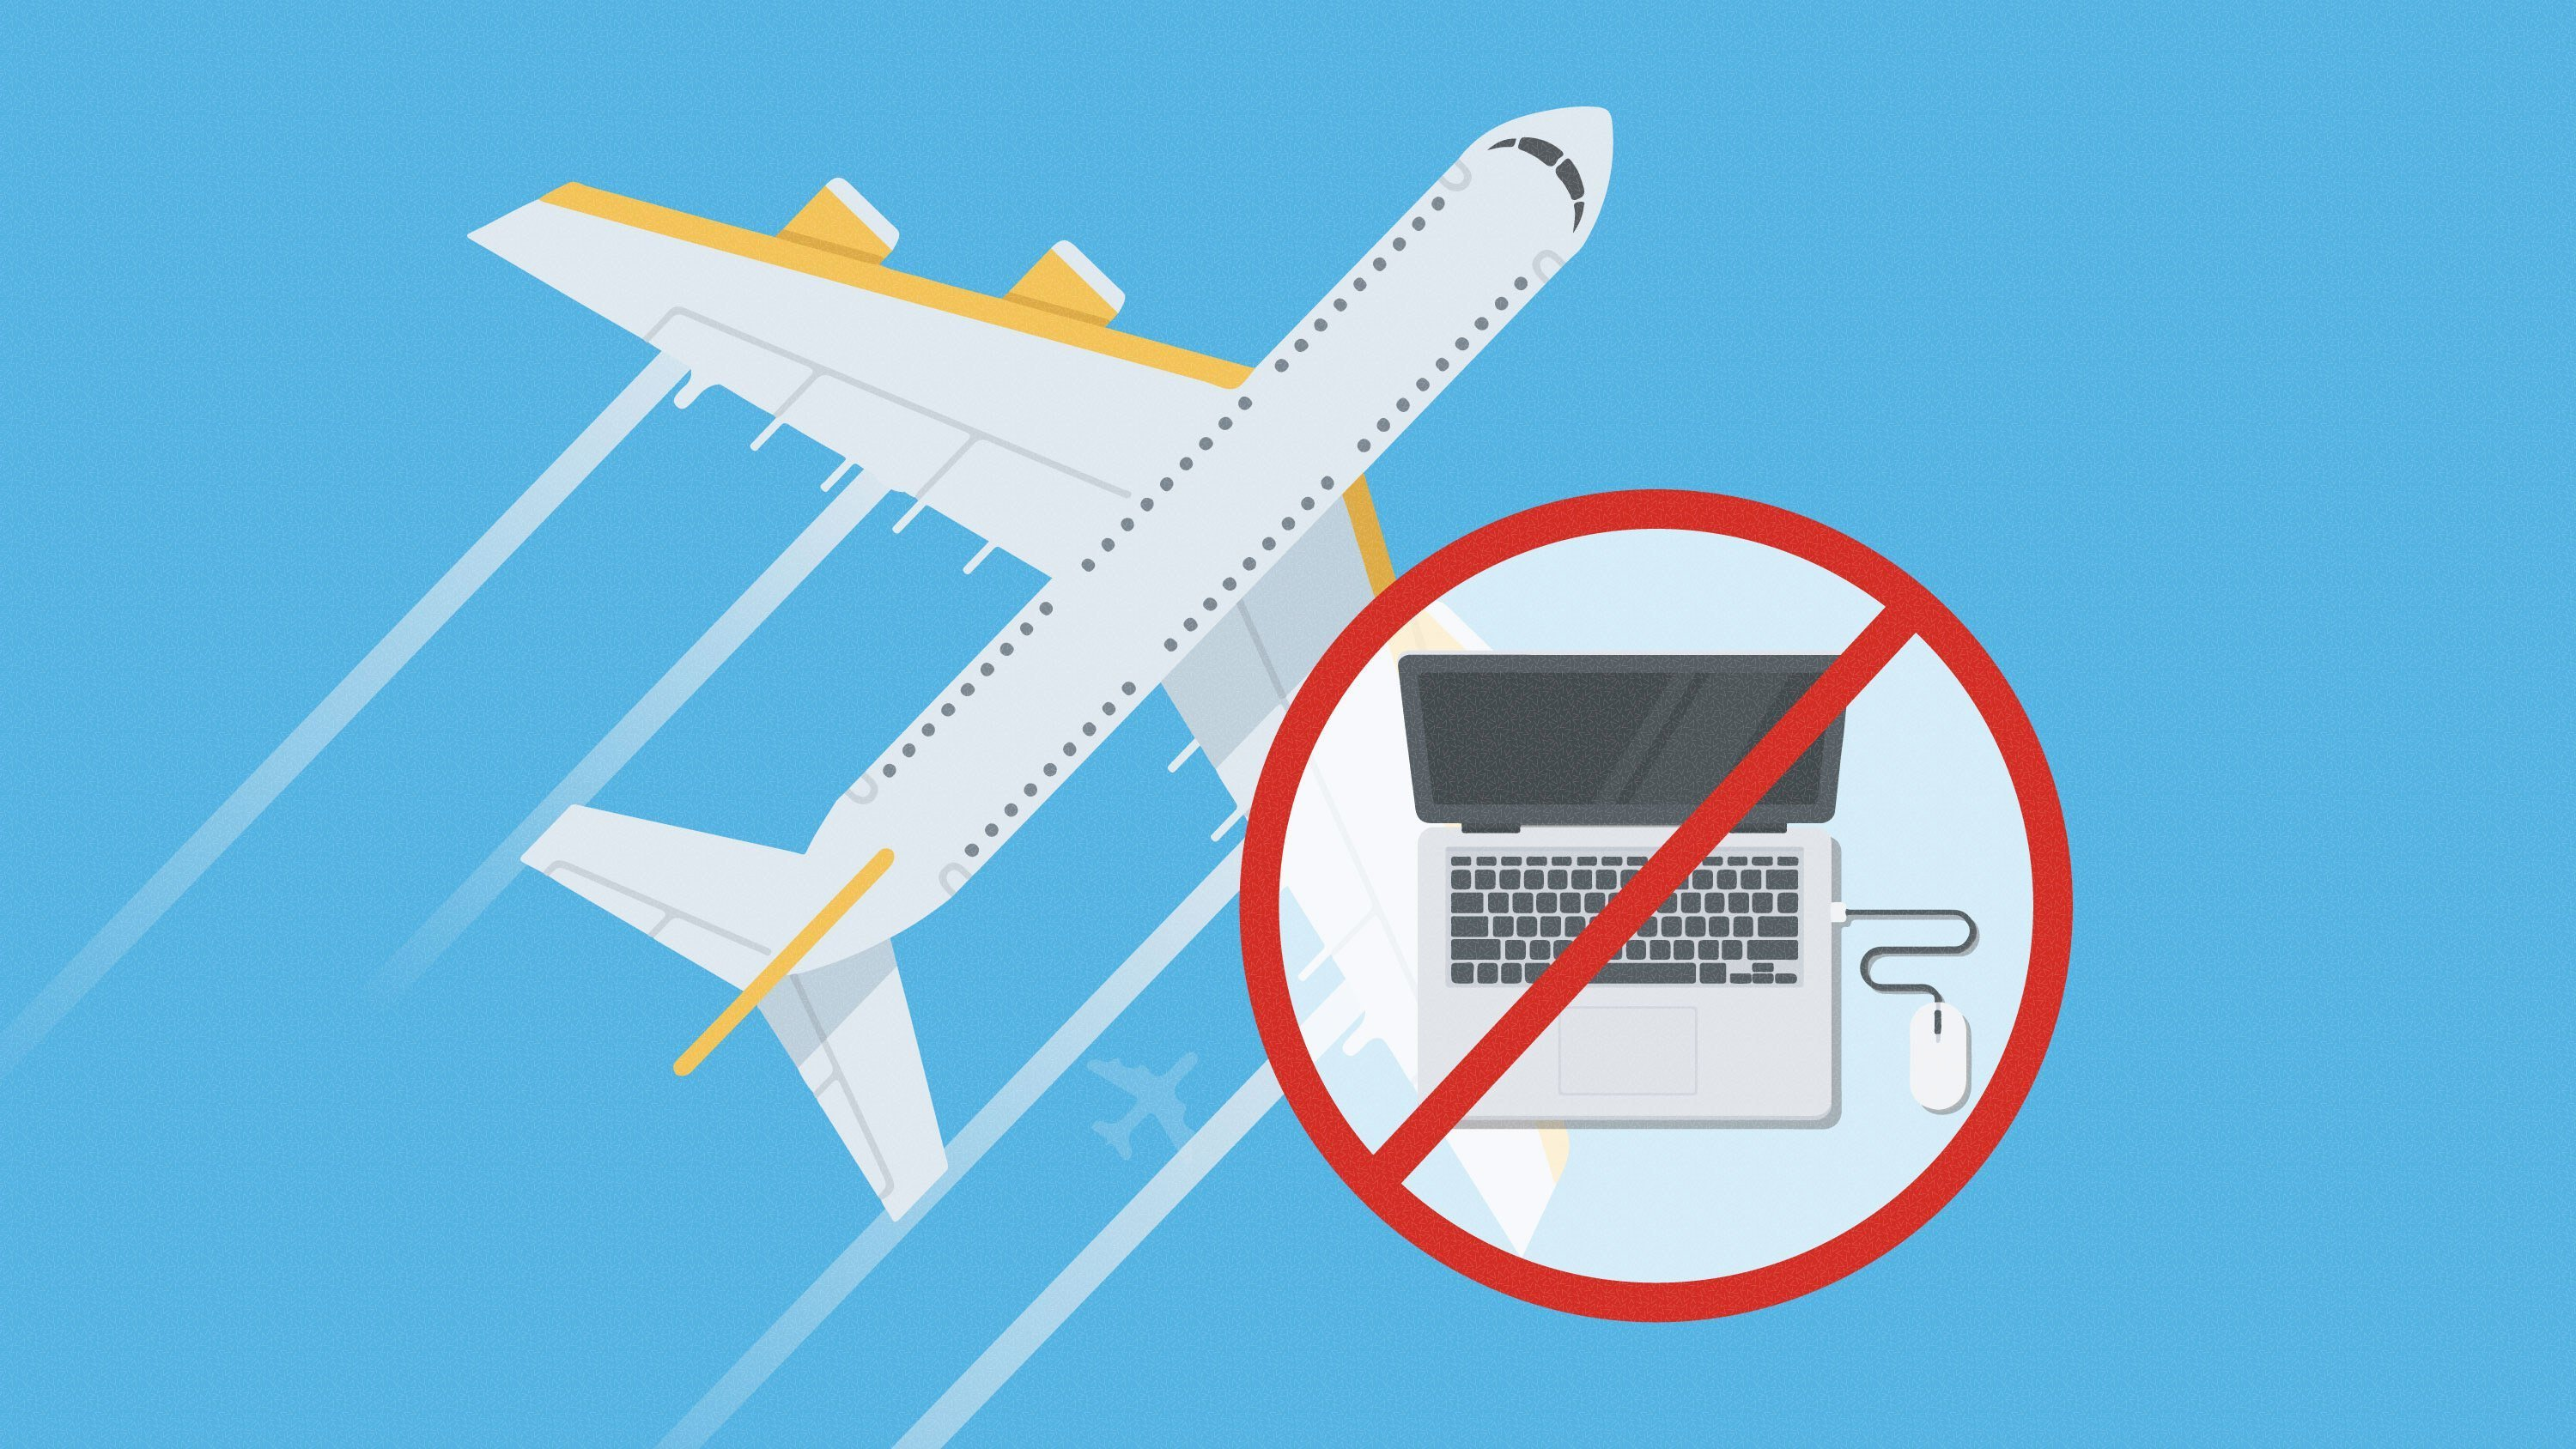 Airlines that fly from certain countries in the Middle East and Africa to the U.S. must require passengers to check in almost all electronic devices rather than carry them into the cabin, said a U.S. official.